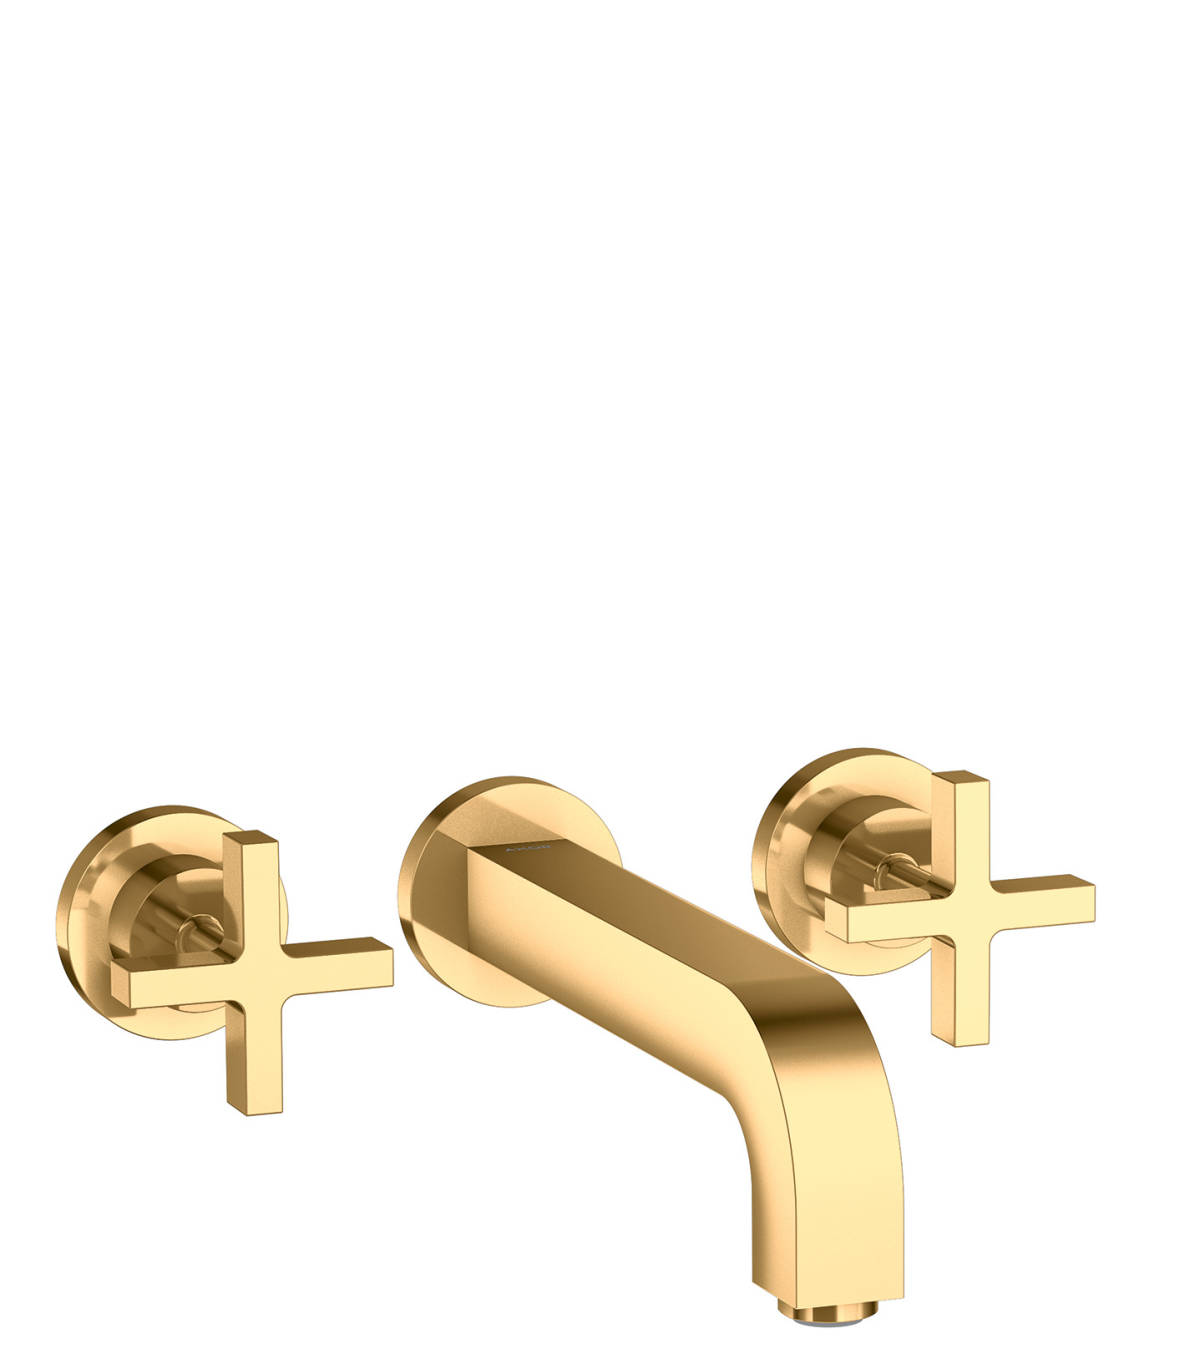 3-hole basin mixer for concealed installation wall-mounted with spout 222 mm, cross handles and escutcheons, Polished Brass, 39143930